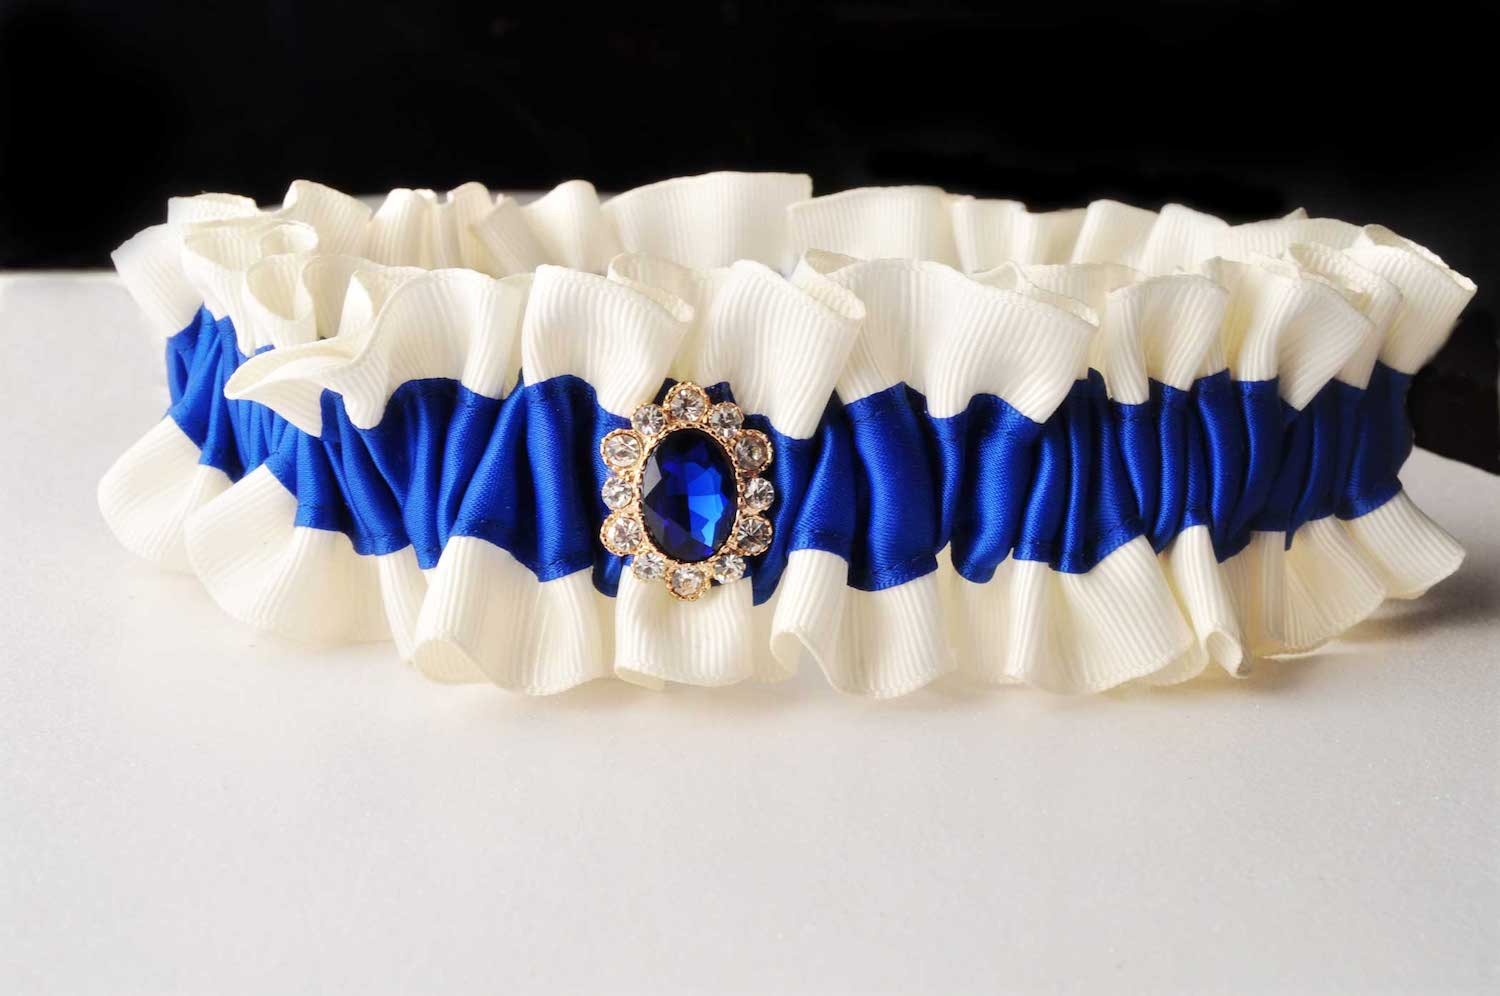 Handmade Royal Blue Wedding Garter with a blue rhinestone - details for blue weddings - handmade bridal accessories from Knotted and Bent - see more on www.brendasweddingblog.com